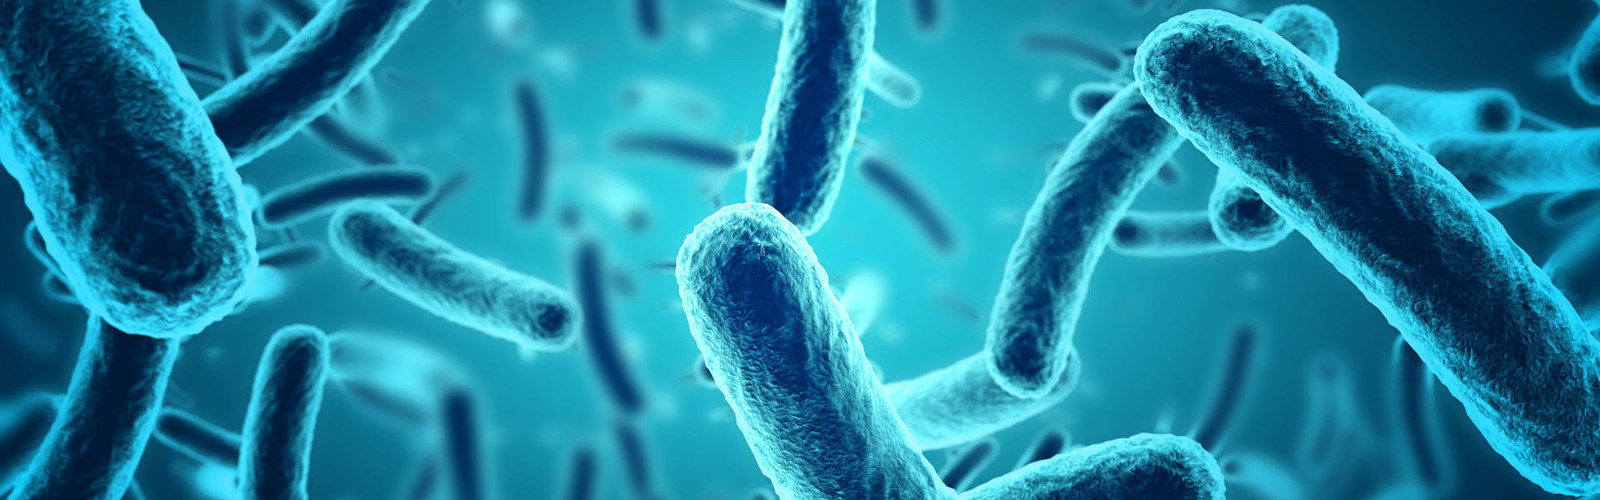 antimicrobial_resistance1920x600_0